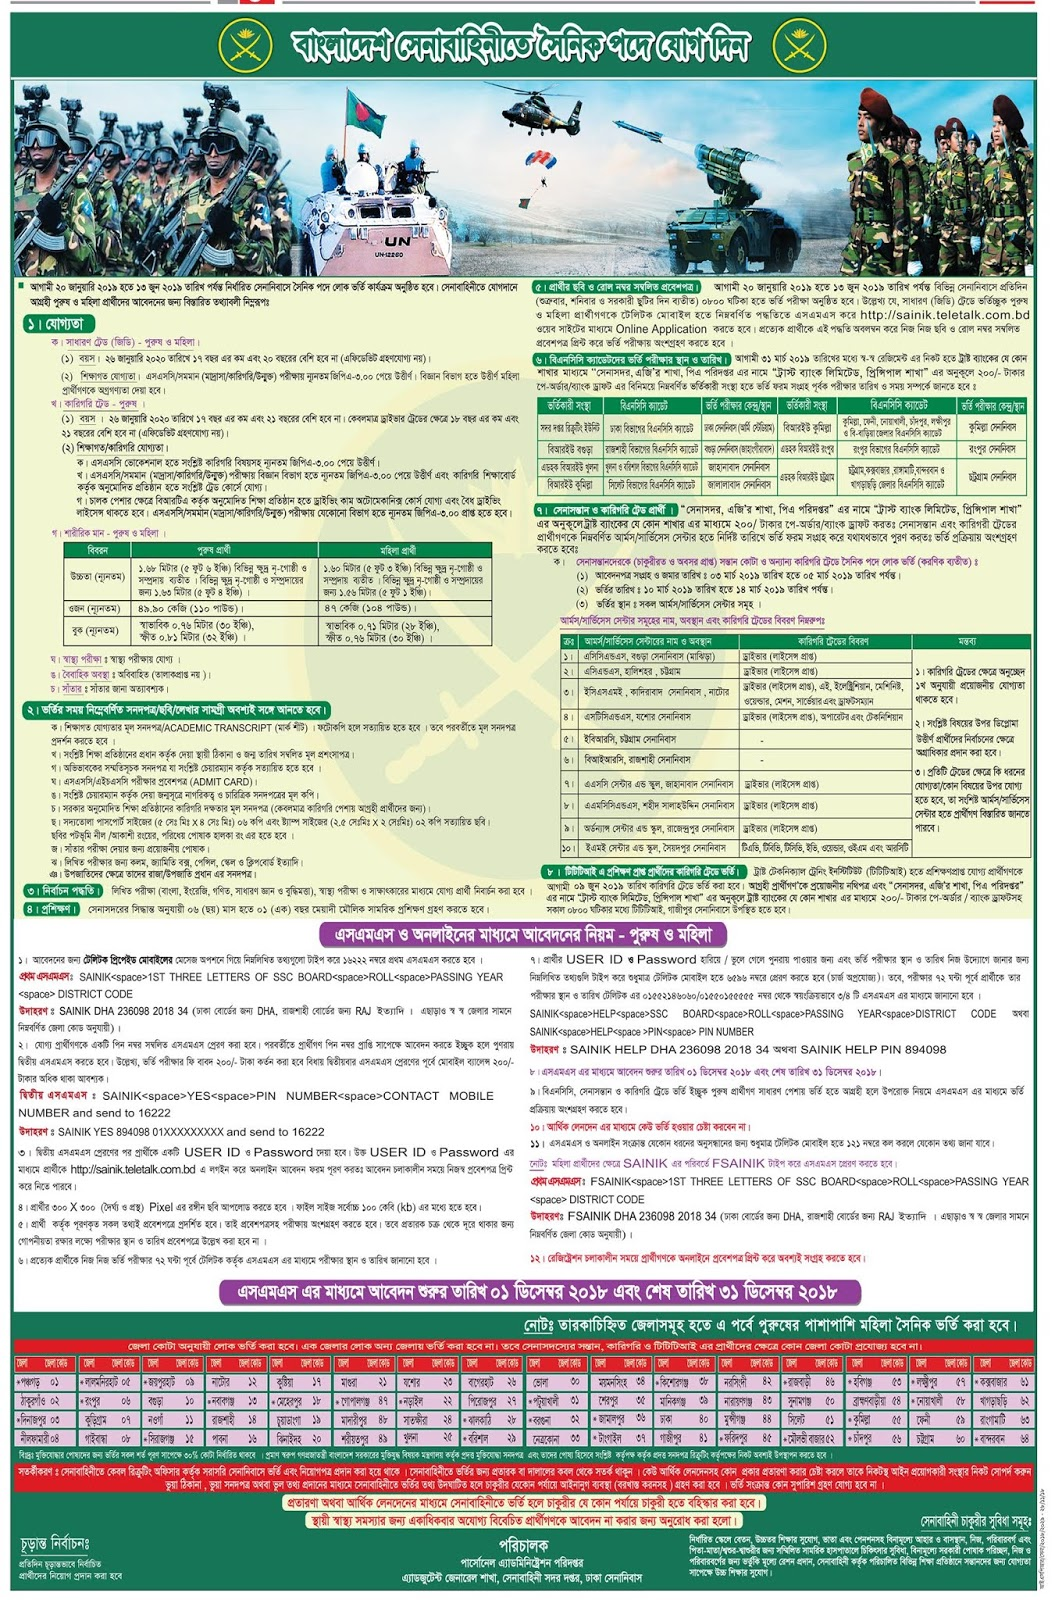 Bangladesh Army Sainik Recruitment Circular 2018